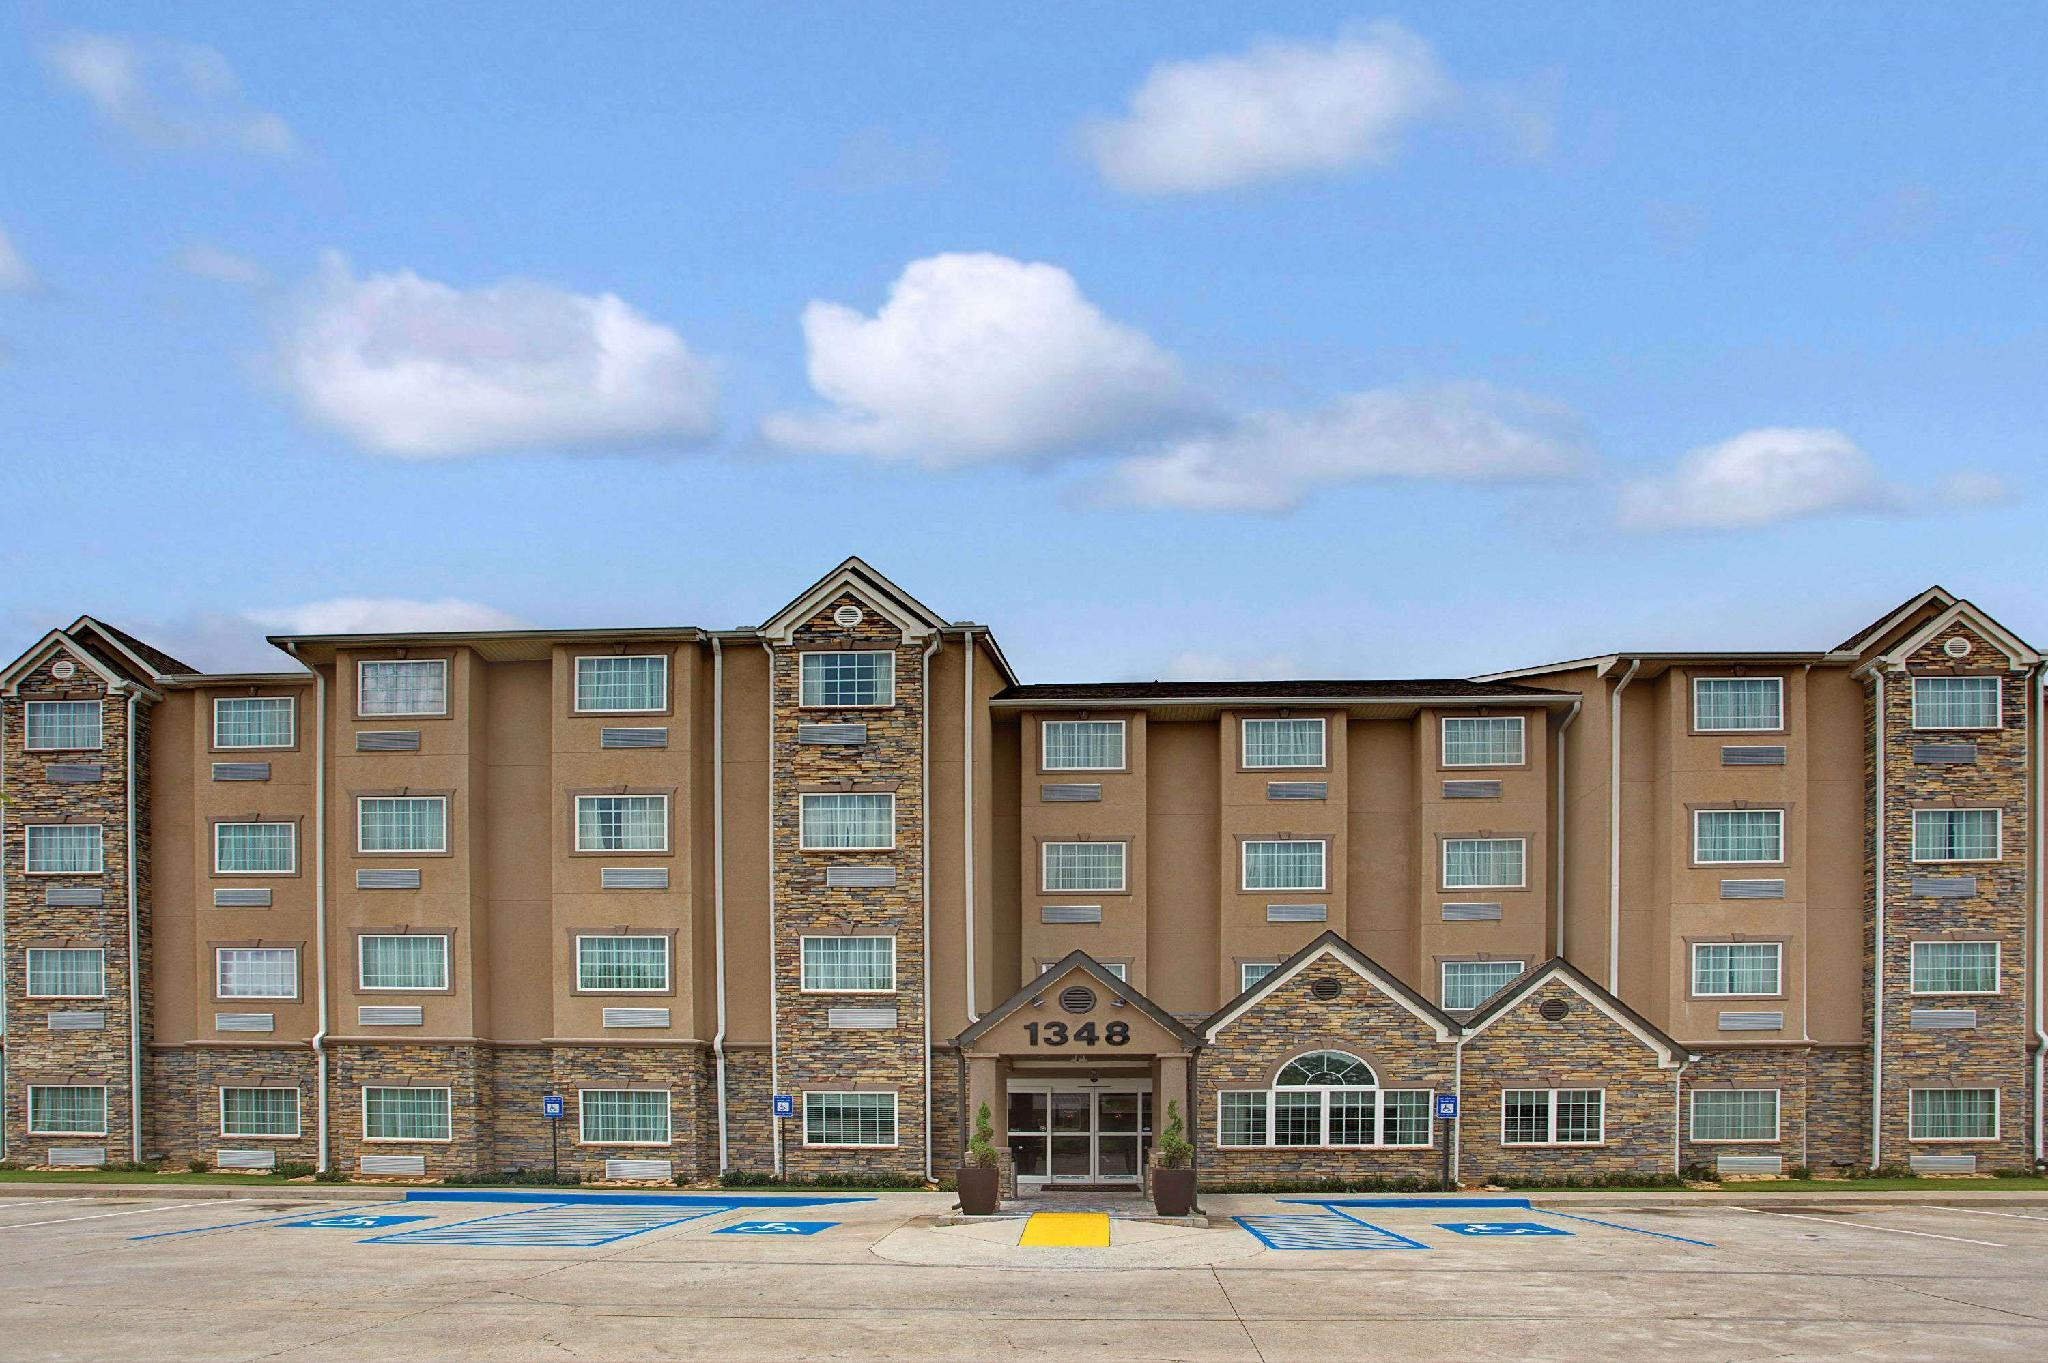 Microtel Inn And Suites By Wyndham Cartersville